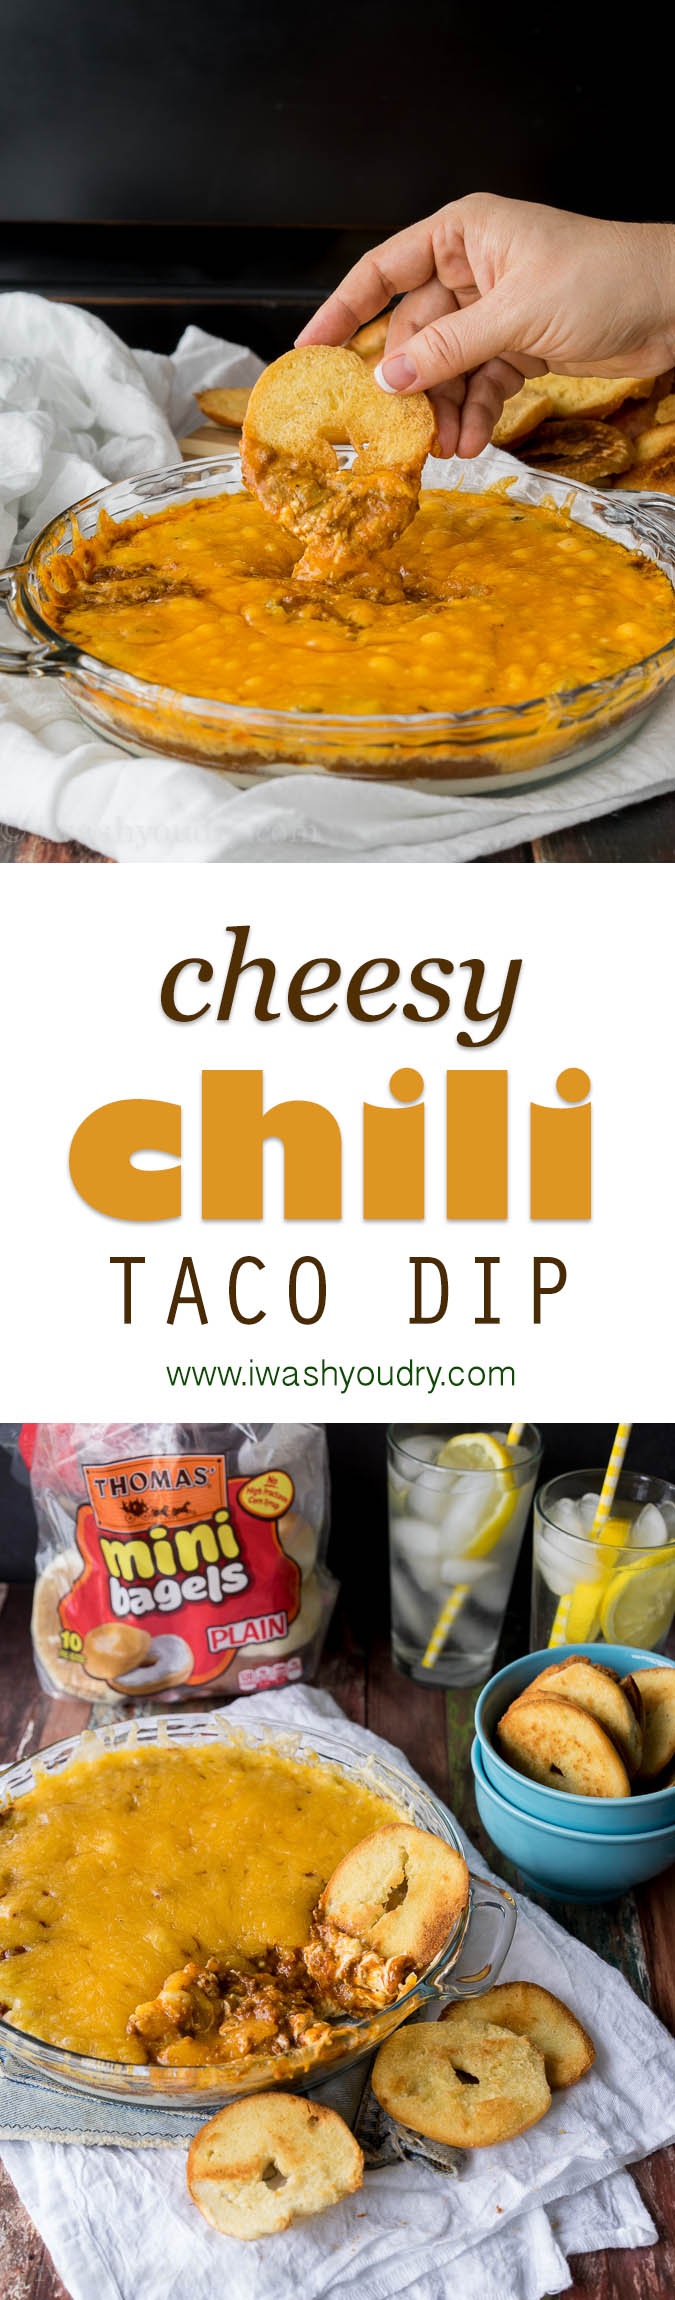 The easiest Cheesy Chili Taco Dip with homemade Bagel Crisps!